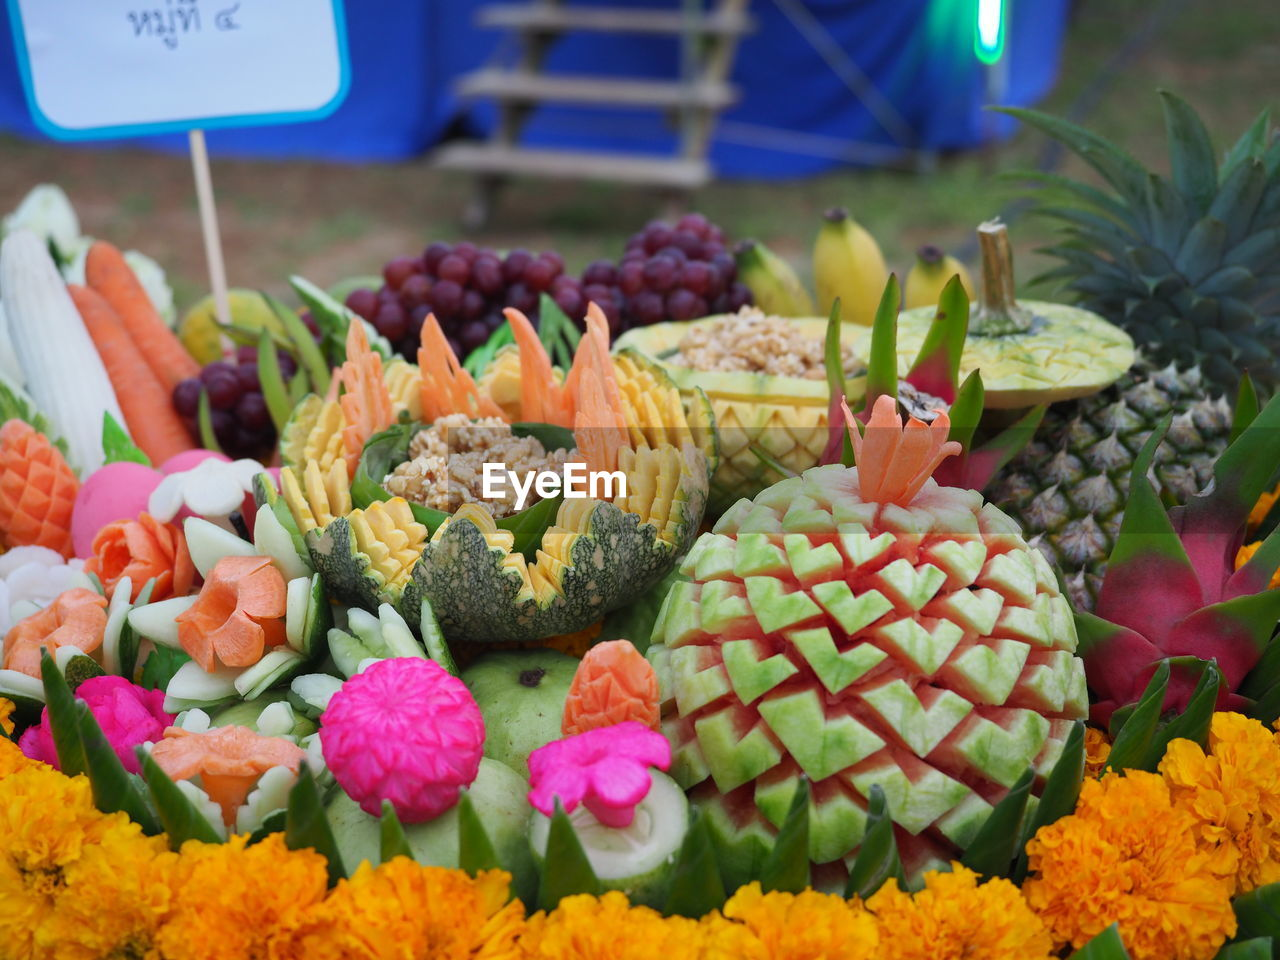 freshness, for sale, retail, food, flower, market, flowering plant, close-up, food and drink, no people, choice, market stall, day, variation, focus on foreground, plant, business, small business, abundance, nature, retail display